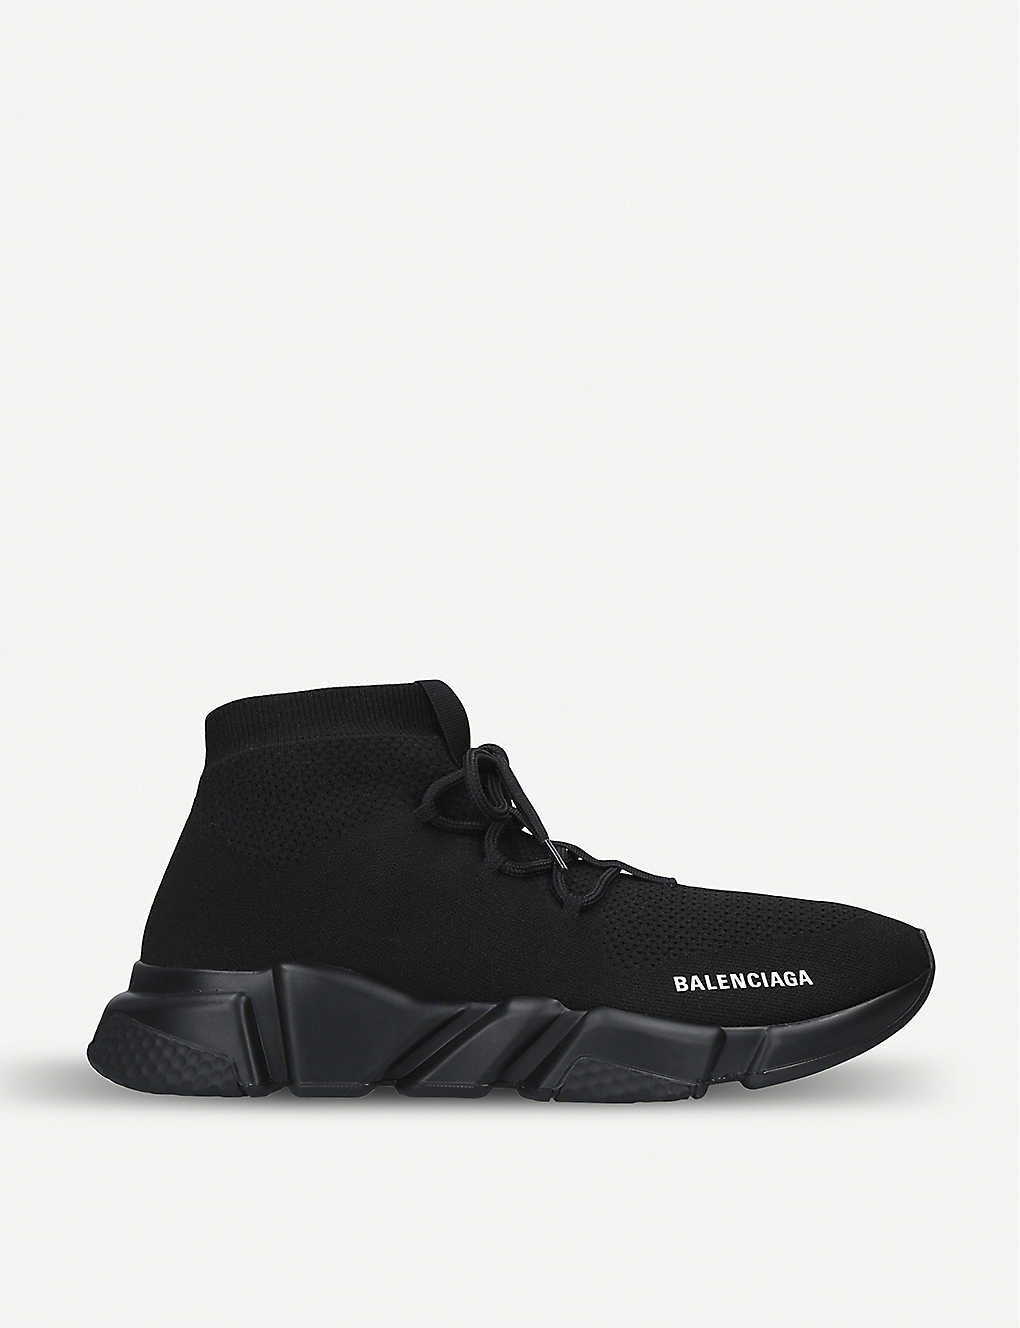 Speed Knit Lace Up Mid Top Trainers Balenciaga Leather Heels